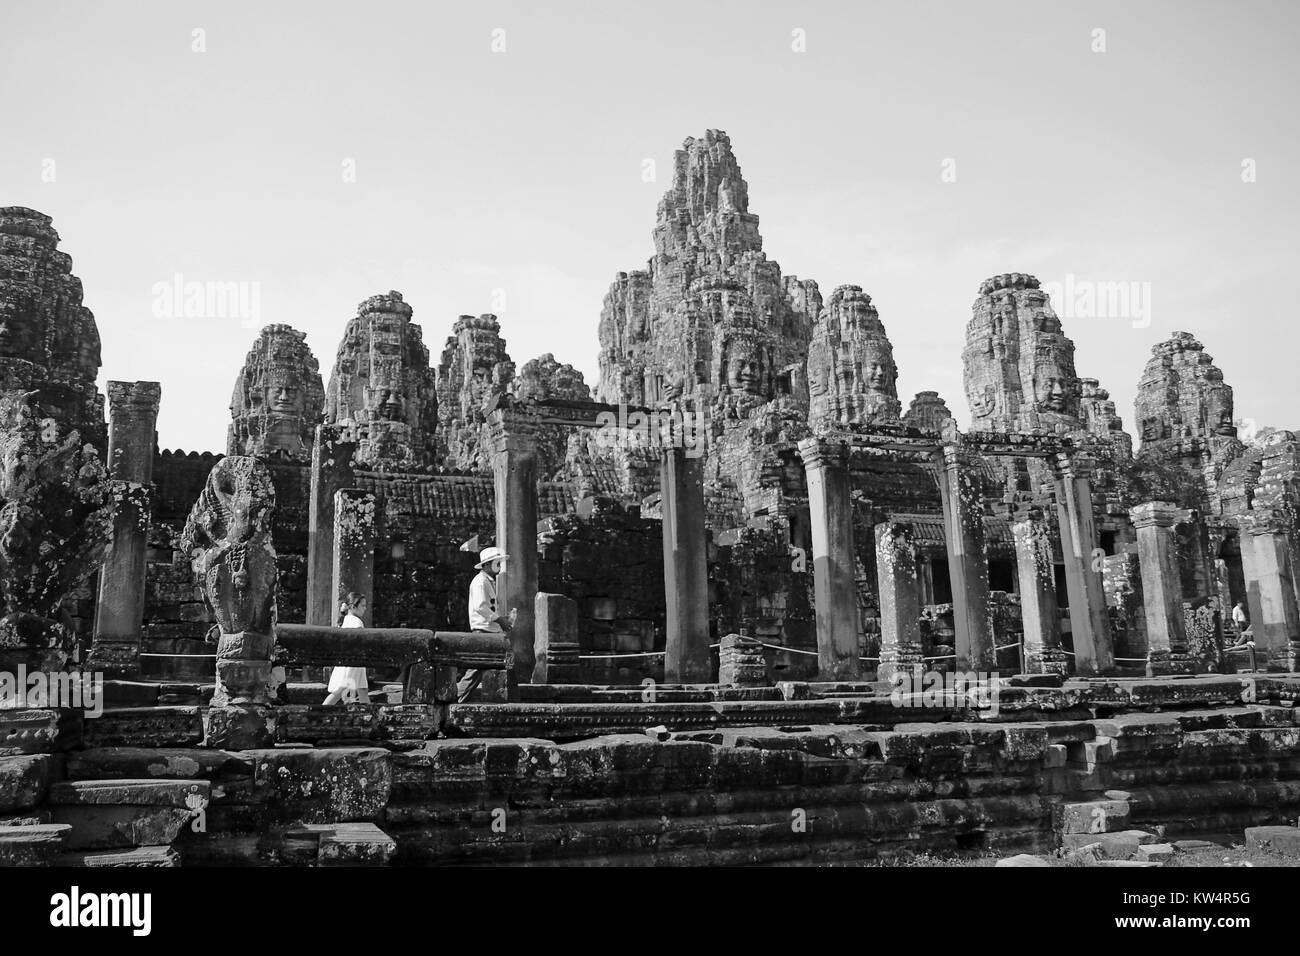 Prasat Bayon from Outside 1 - Stock Image